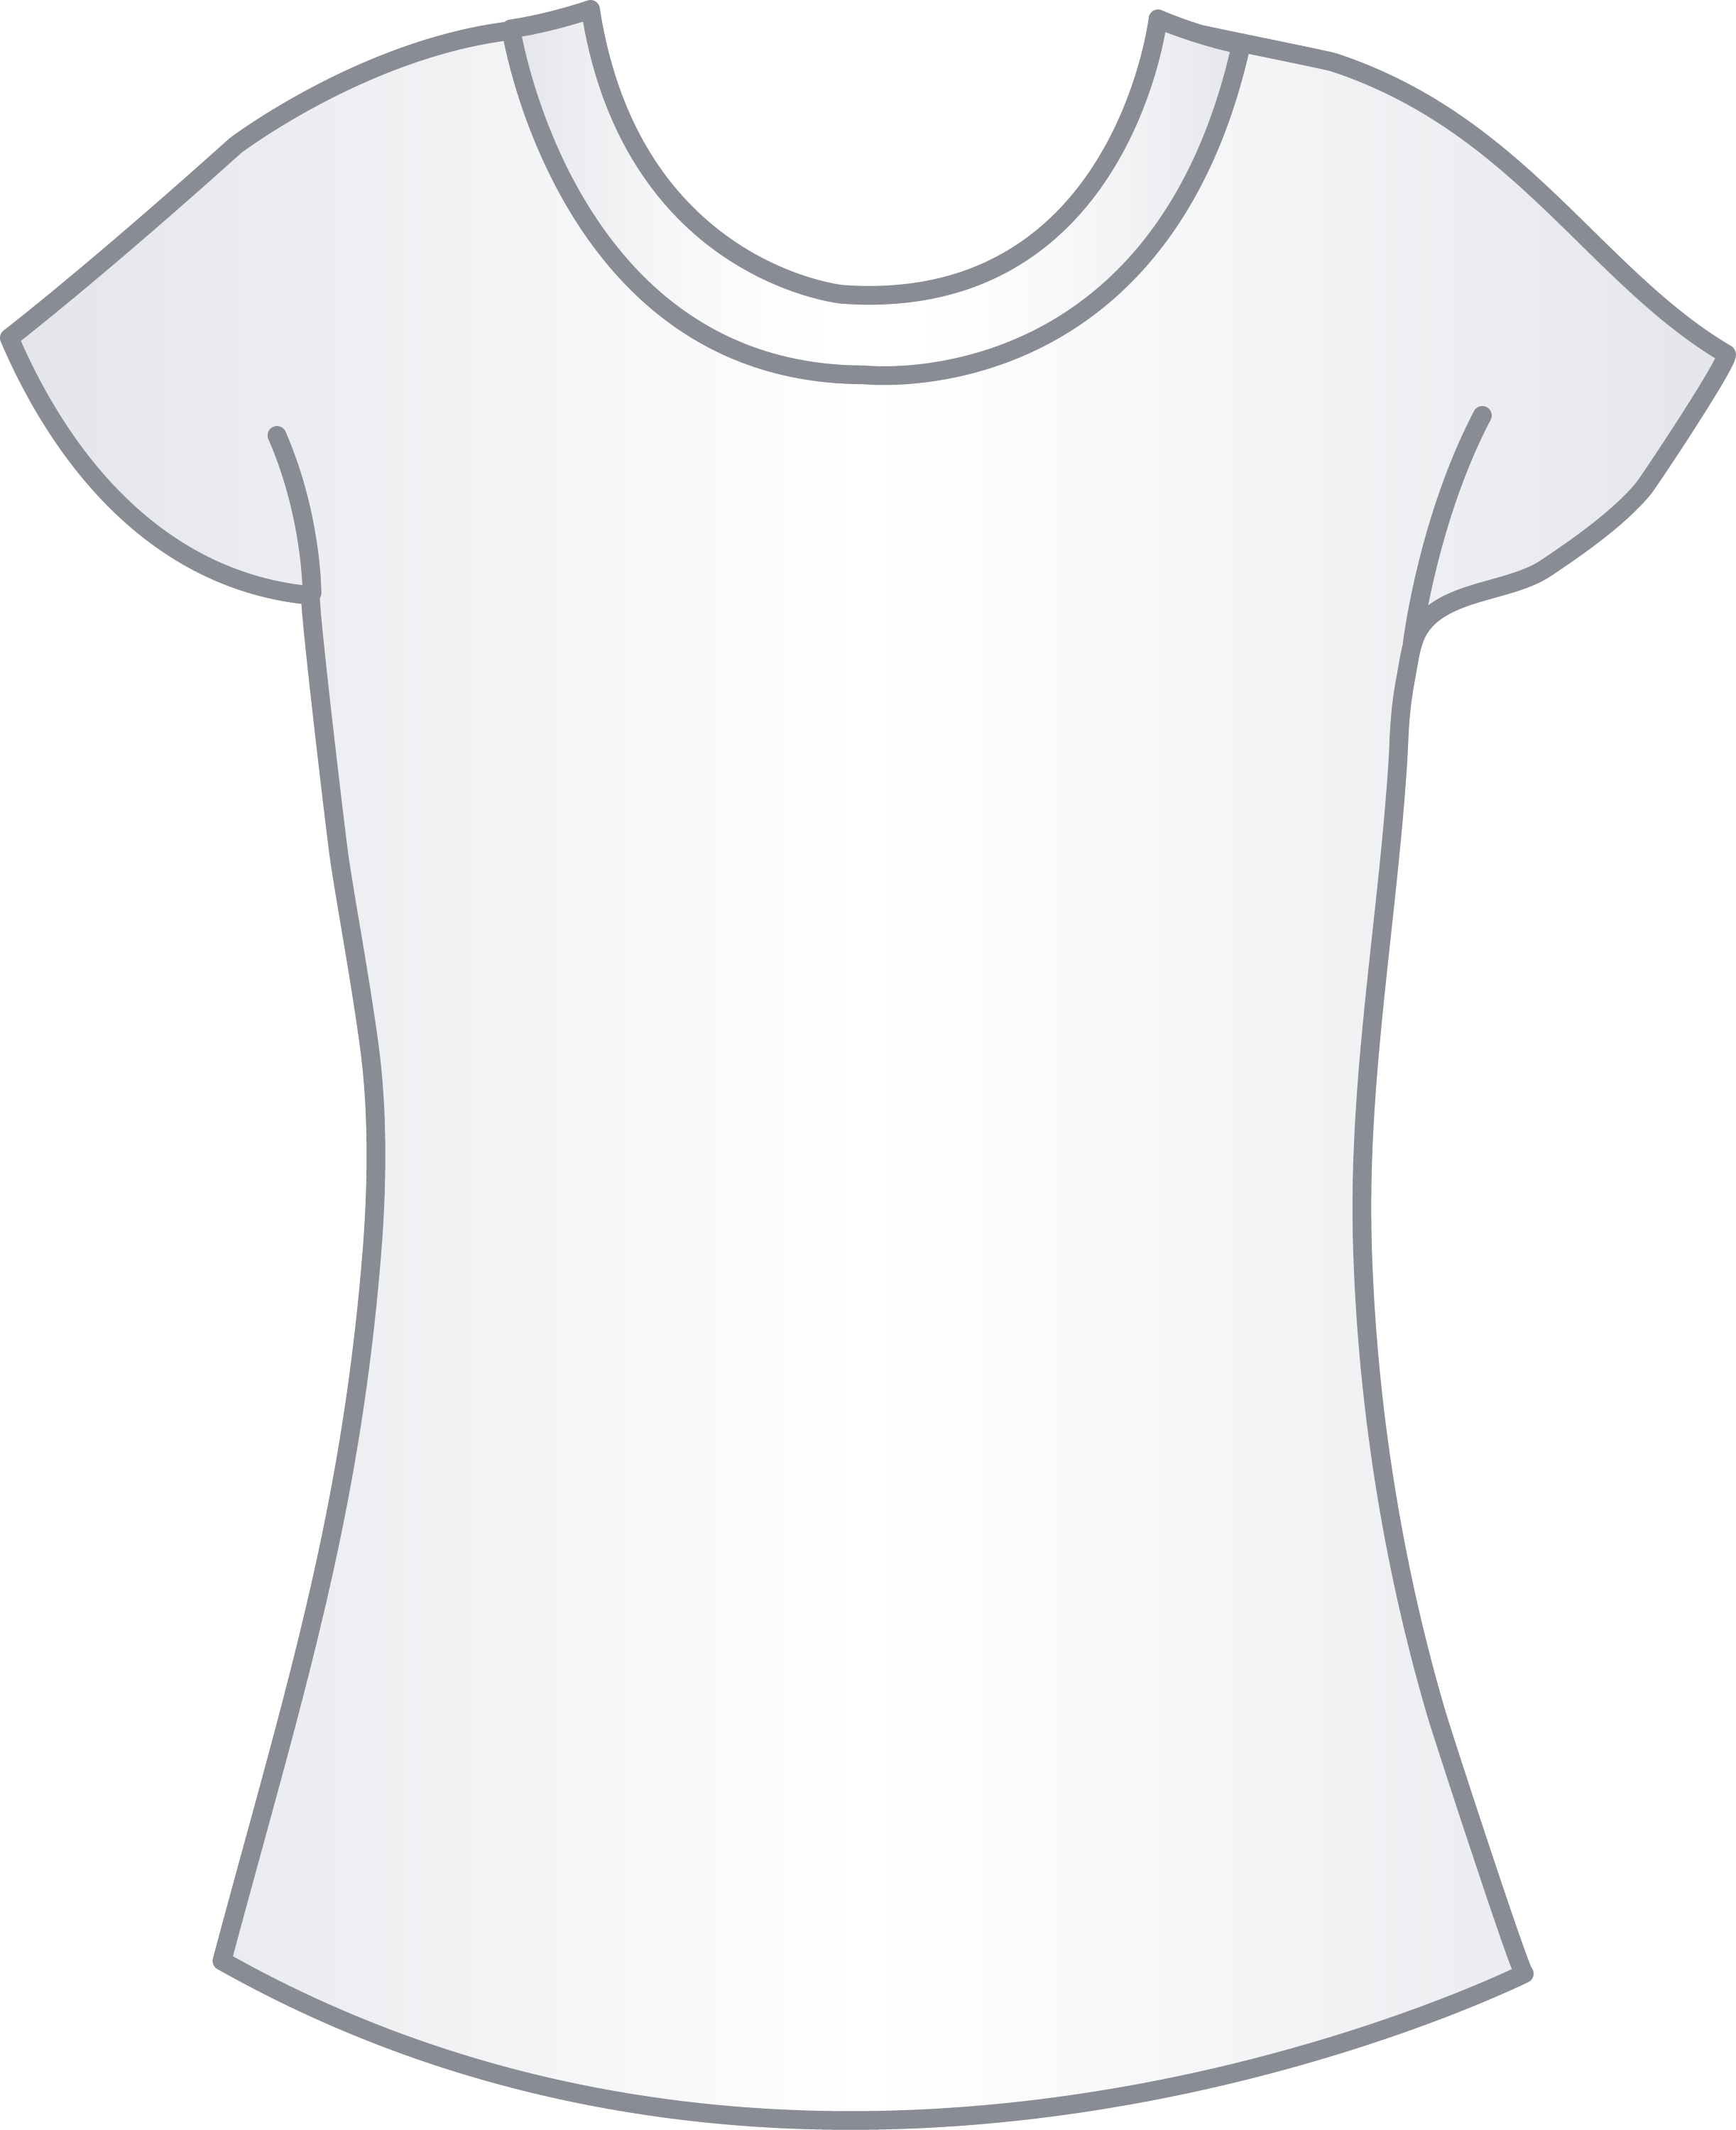 Womens White T Shirt Template